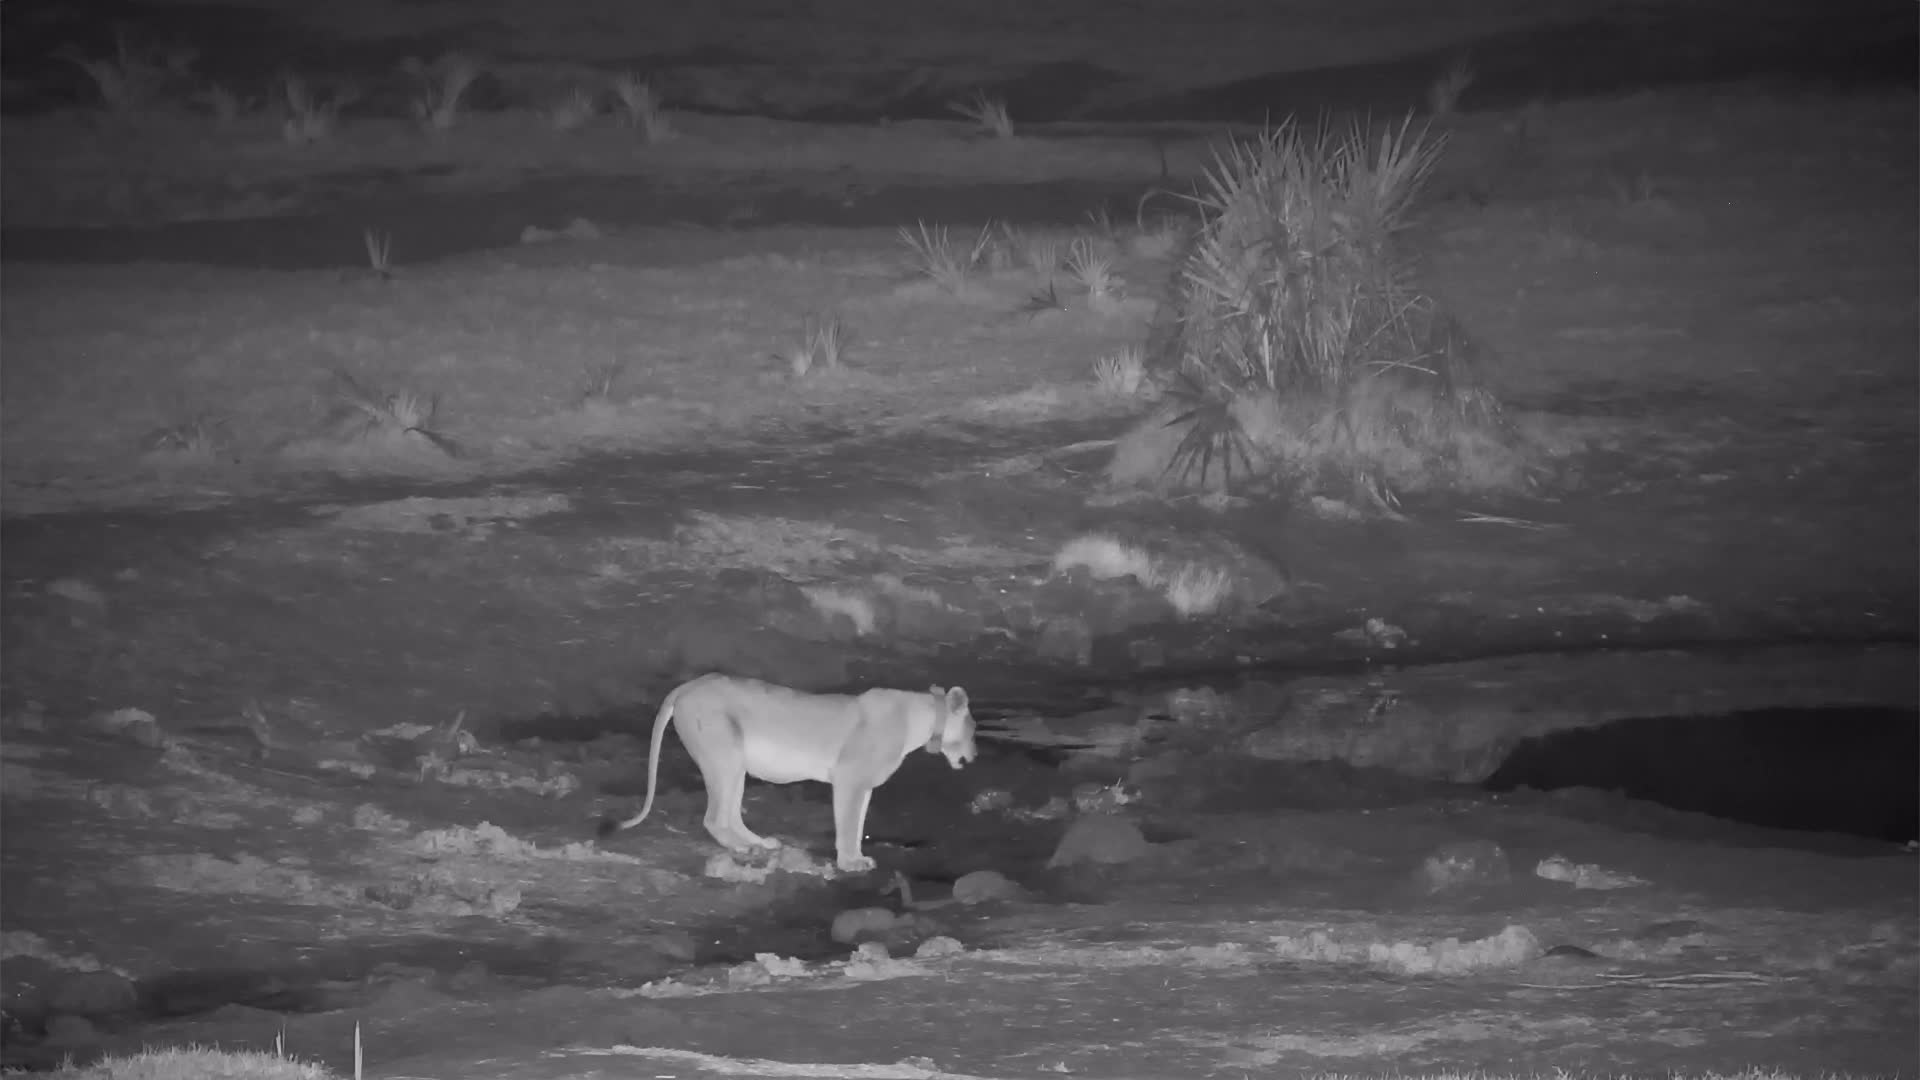 VIDEO: Lioness came for a drink and called her friends